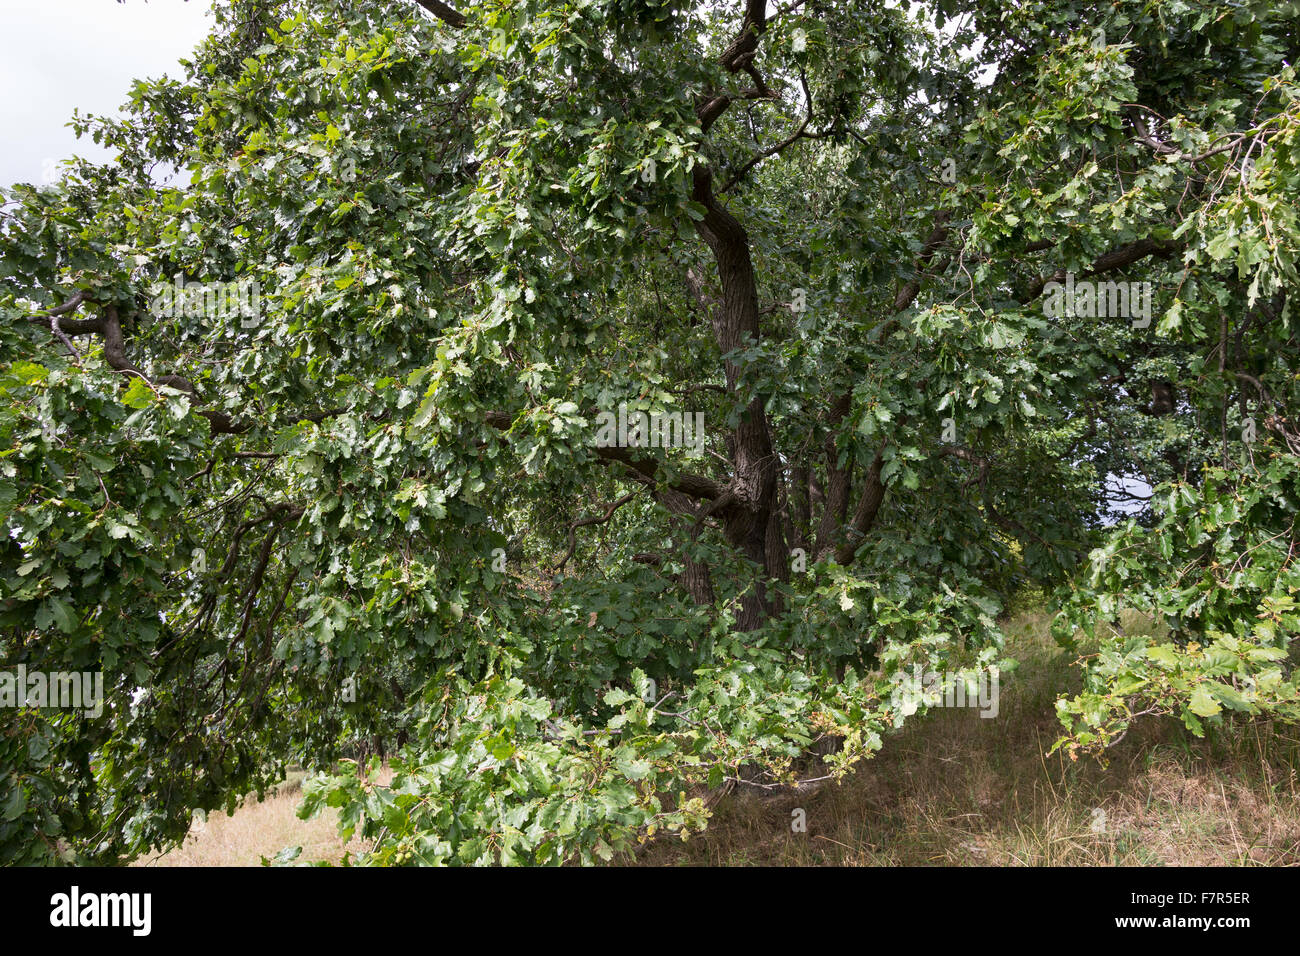 Sessile oak, Cornish oak, Irish oak, Trauben-Eiche, Traubeneiche, Eiche, Quercus petraea, Quercus sessilis, Quercus - Stock Image